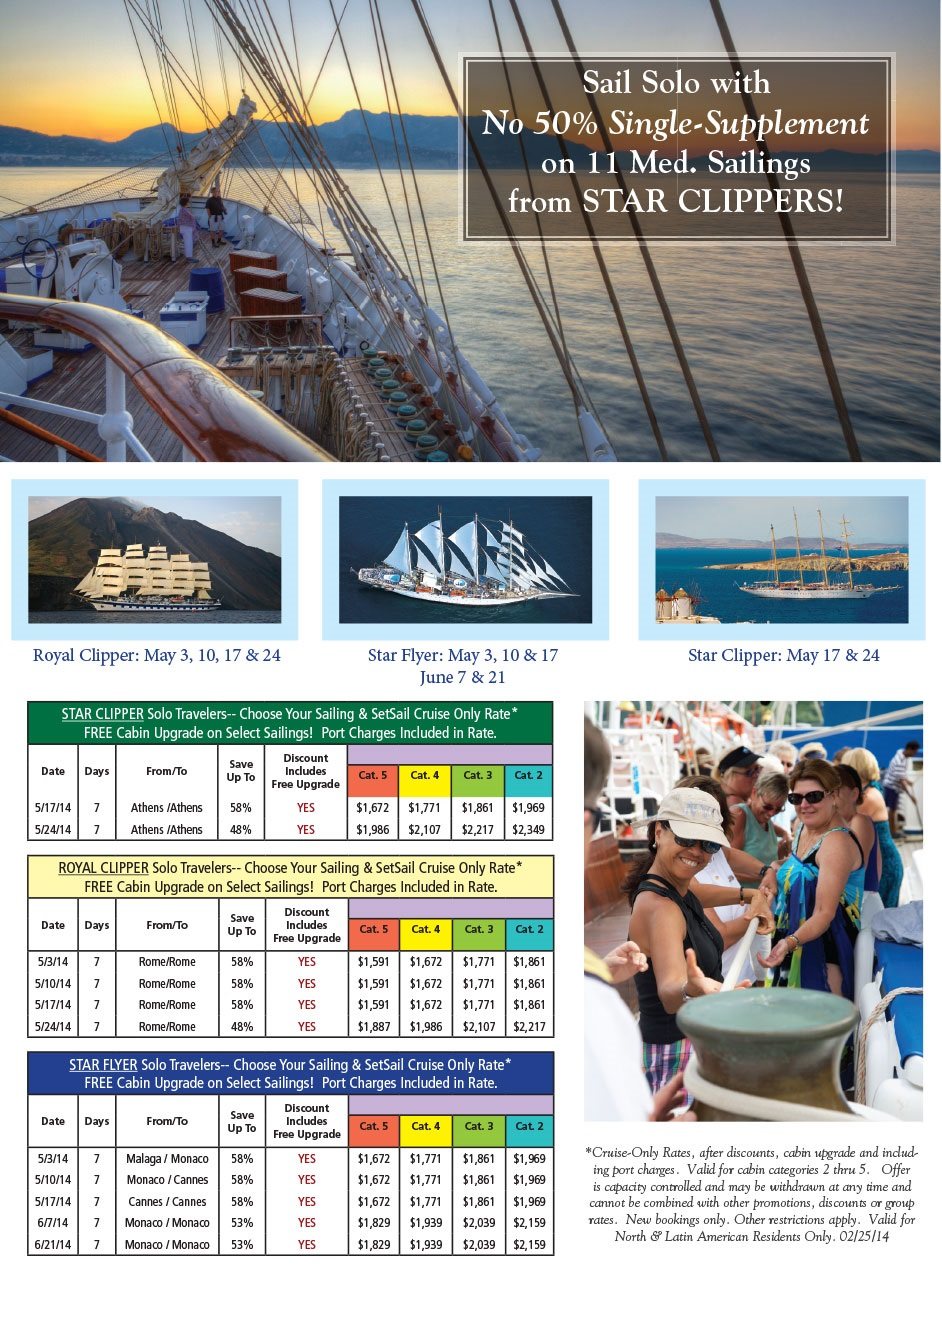 Star Clippers: No Single Supplements 2014 Mediterranean {focus_keyword} Star Clippers Mediterranean Sailings with Single Surcharges Waived Star Clippers singles 2014 Mediterranean